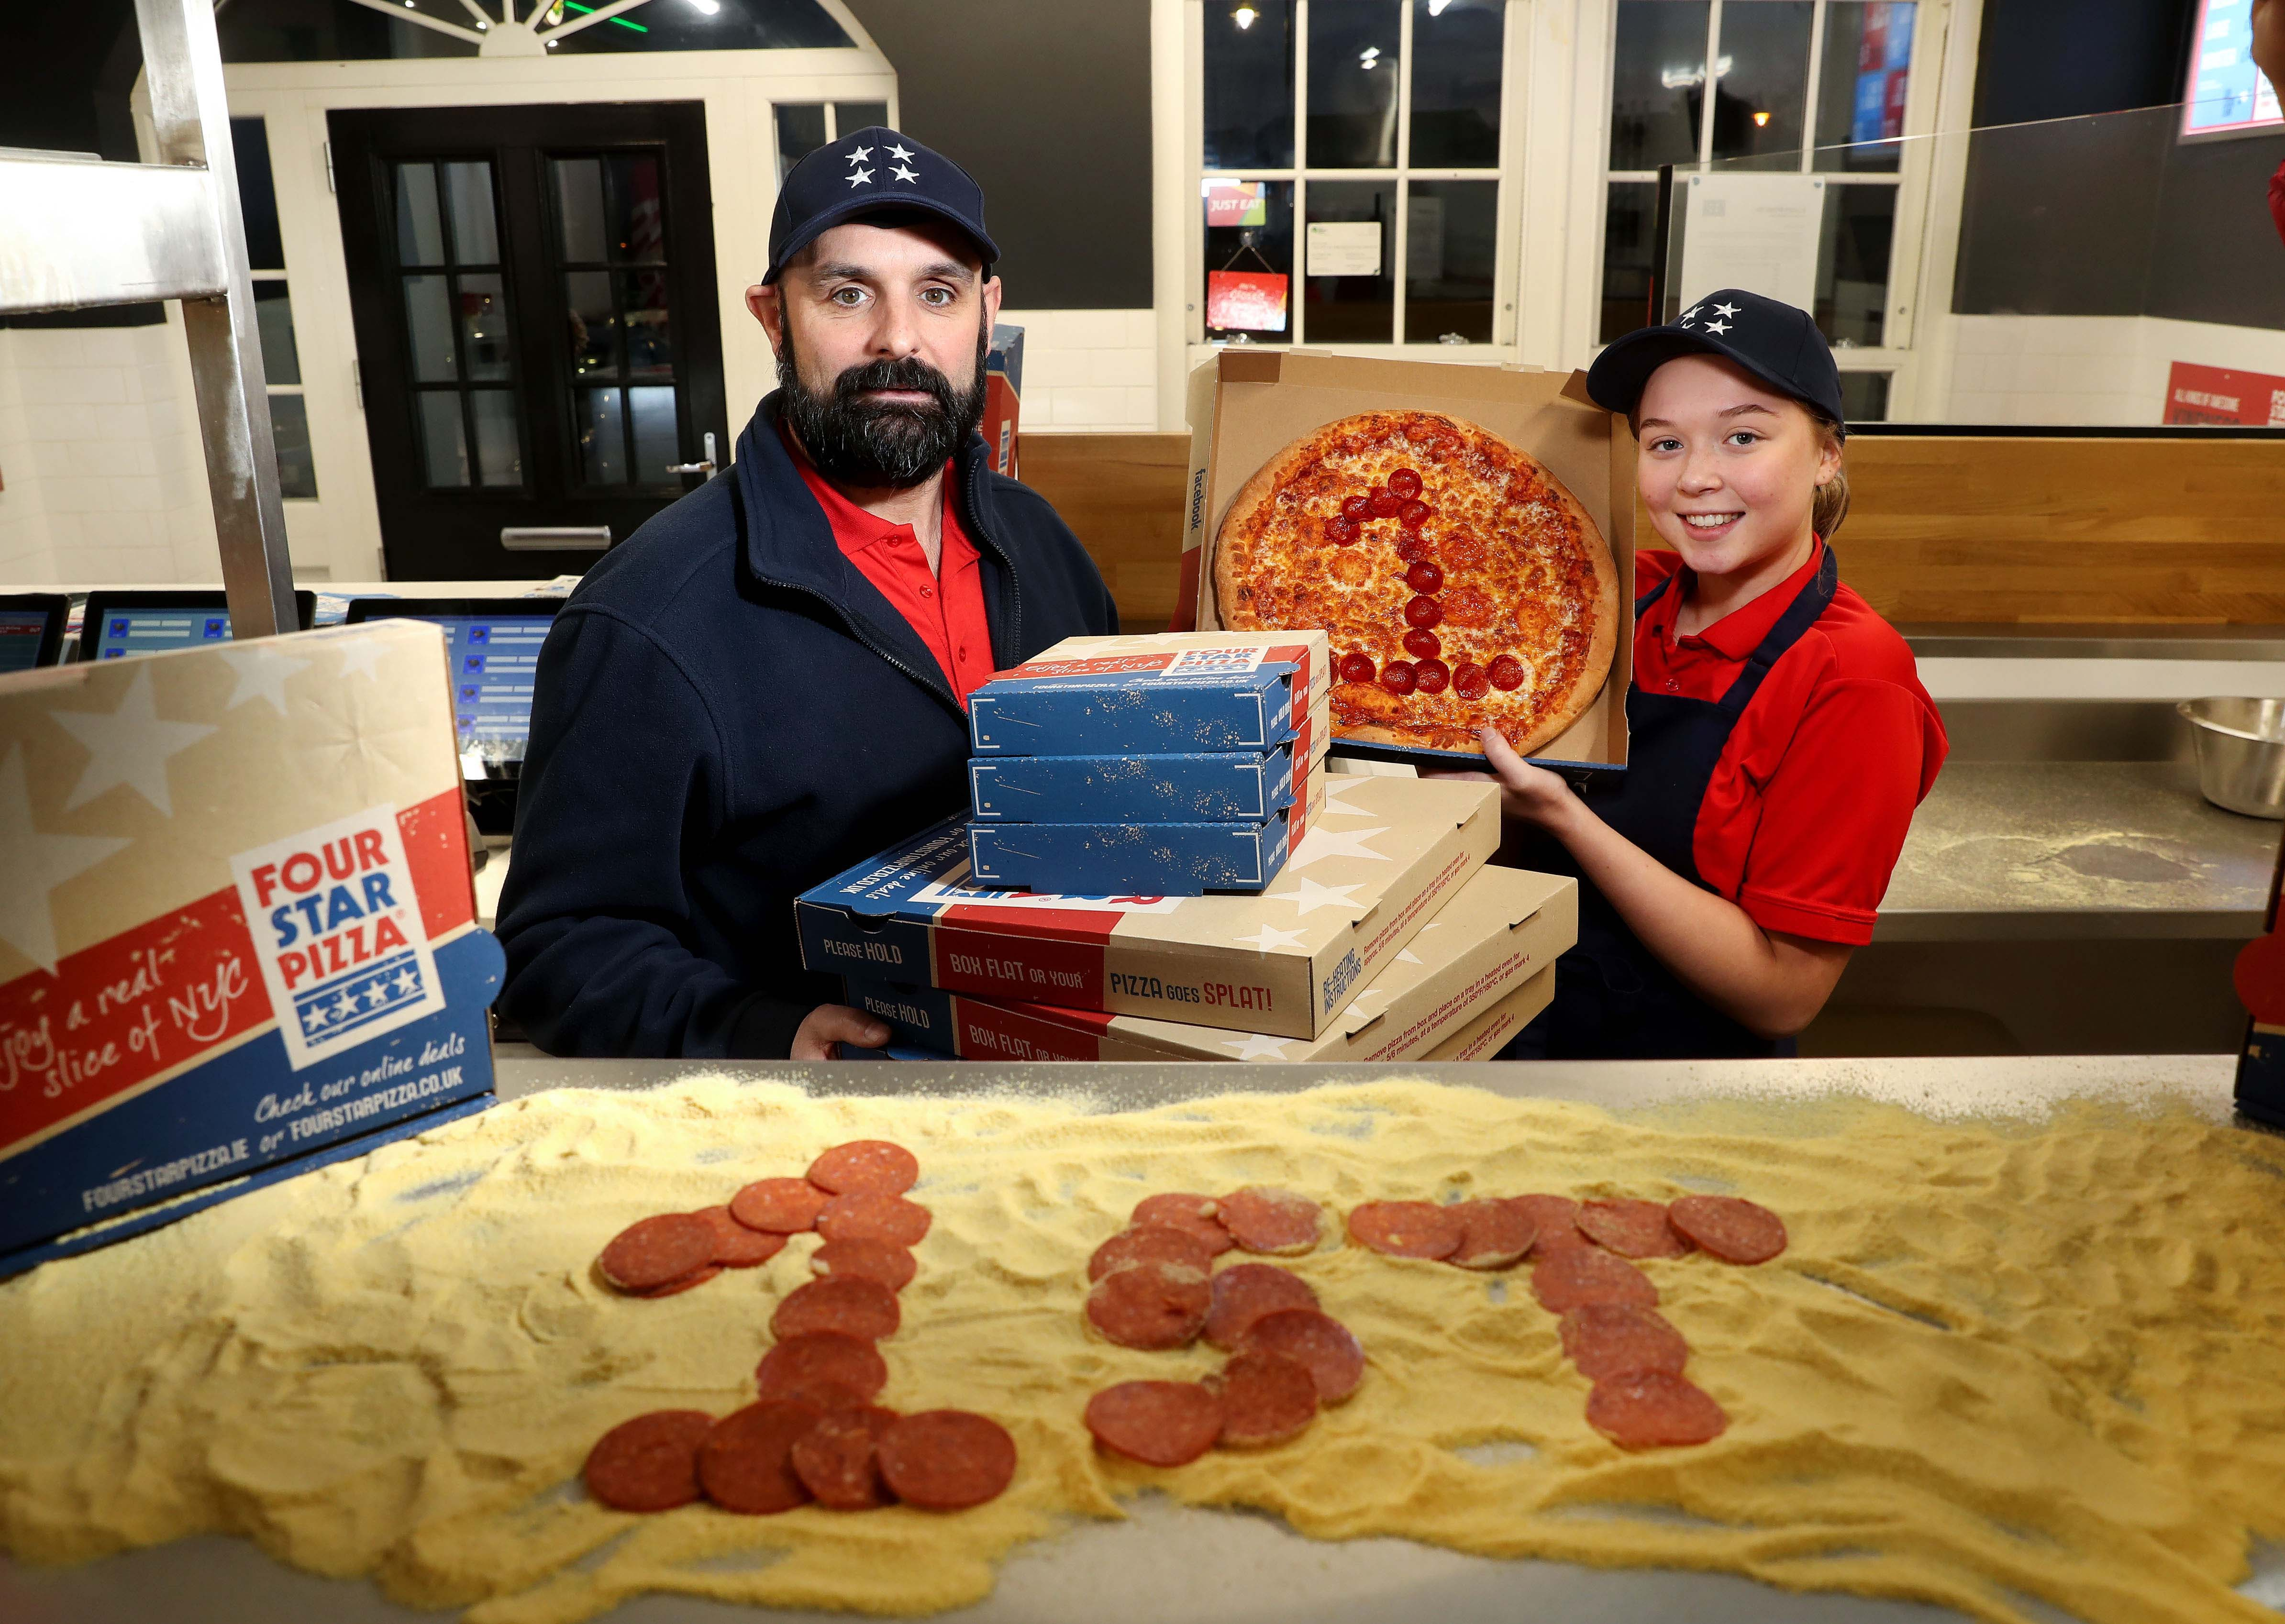 Scott Higginson (left) and Sinead Smiley of Four Star Pizza in Lisburn serve up a celebratory pizza to mark the store's first birthday. It's been a very successful year for the popular store which opened on the Nettlehill Road in December last year, creating 25 jobs in a £150,000 investment by the Irish-owned pizza chain. Since then, it has delivered no fewer than 82,000 fresh pizzas to homes in the Lisburn area, using OVER ONE MILLION pepperoni slices, 10 TONNES of cheese and 17 TONNES of flour. So successful has the Lisburn store been that, from January 1, 2020, it will be opening from 12 noon every day to meet the lunchtime demand. Four Star Pizza was established in 1988, and operates 57 stores across the island of Ireland, including 13 in Northern Ireland. It is renowned for its pizza dough which is freshly prepared by hand on site daily by passionate and expertly trained pizza chefs, using top quality locally sourced flour. For more information go to https://fourstarpizza.co.uk/